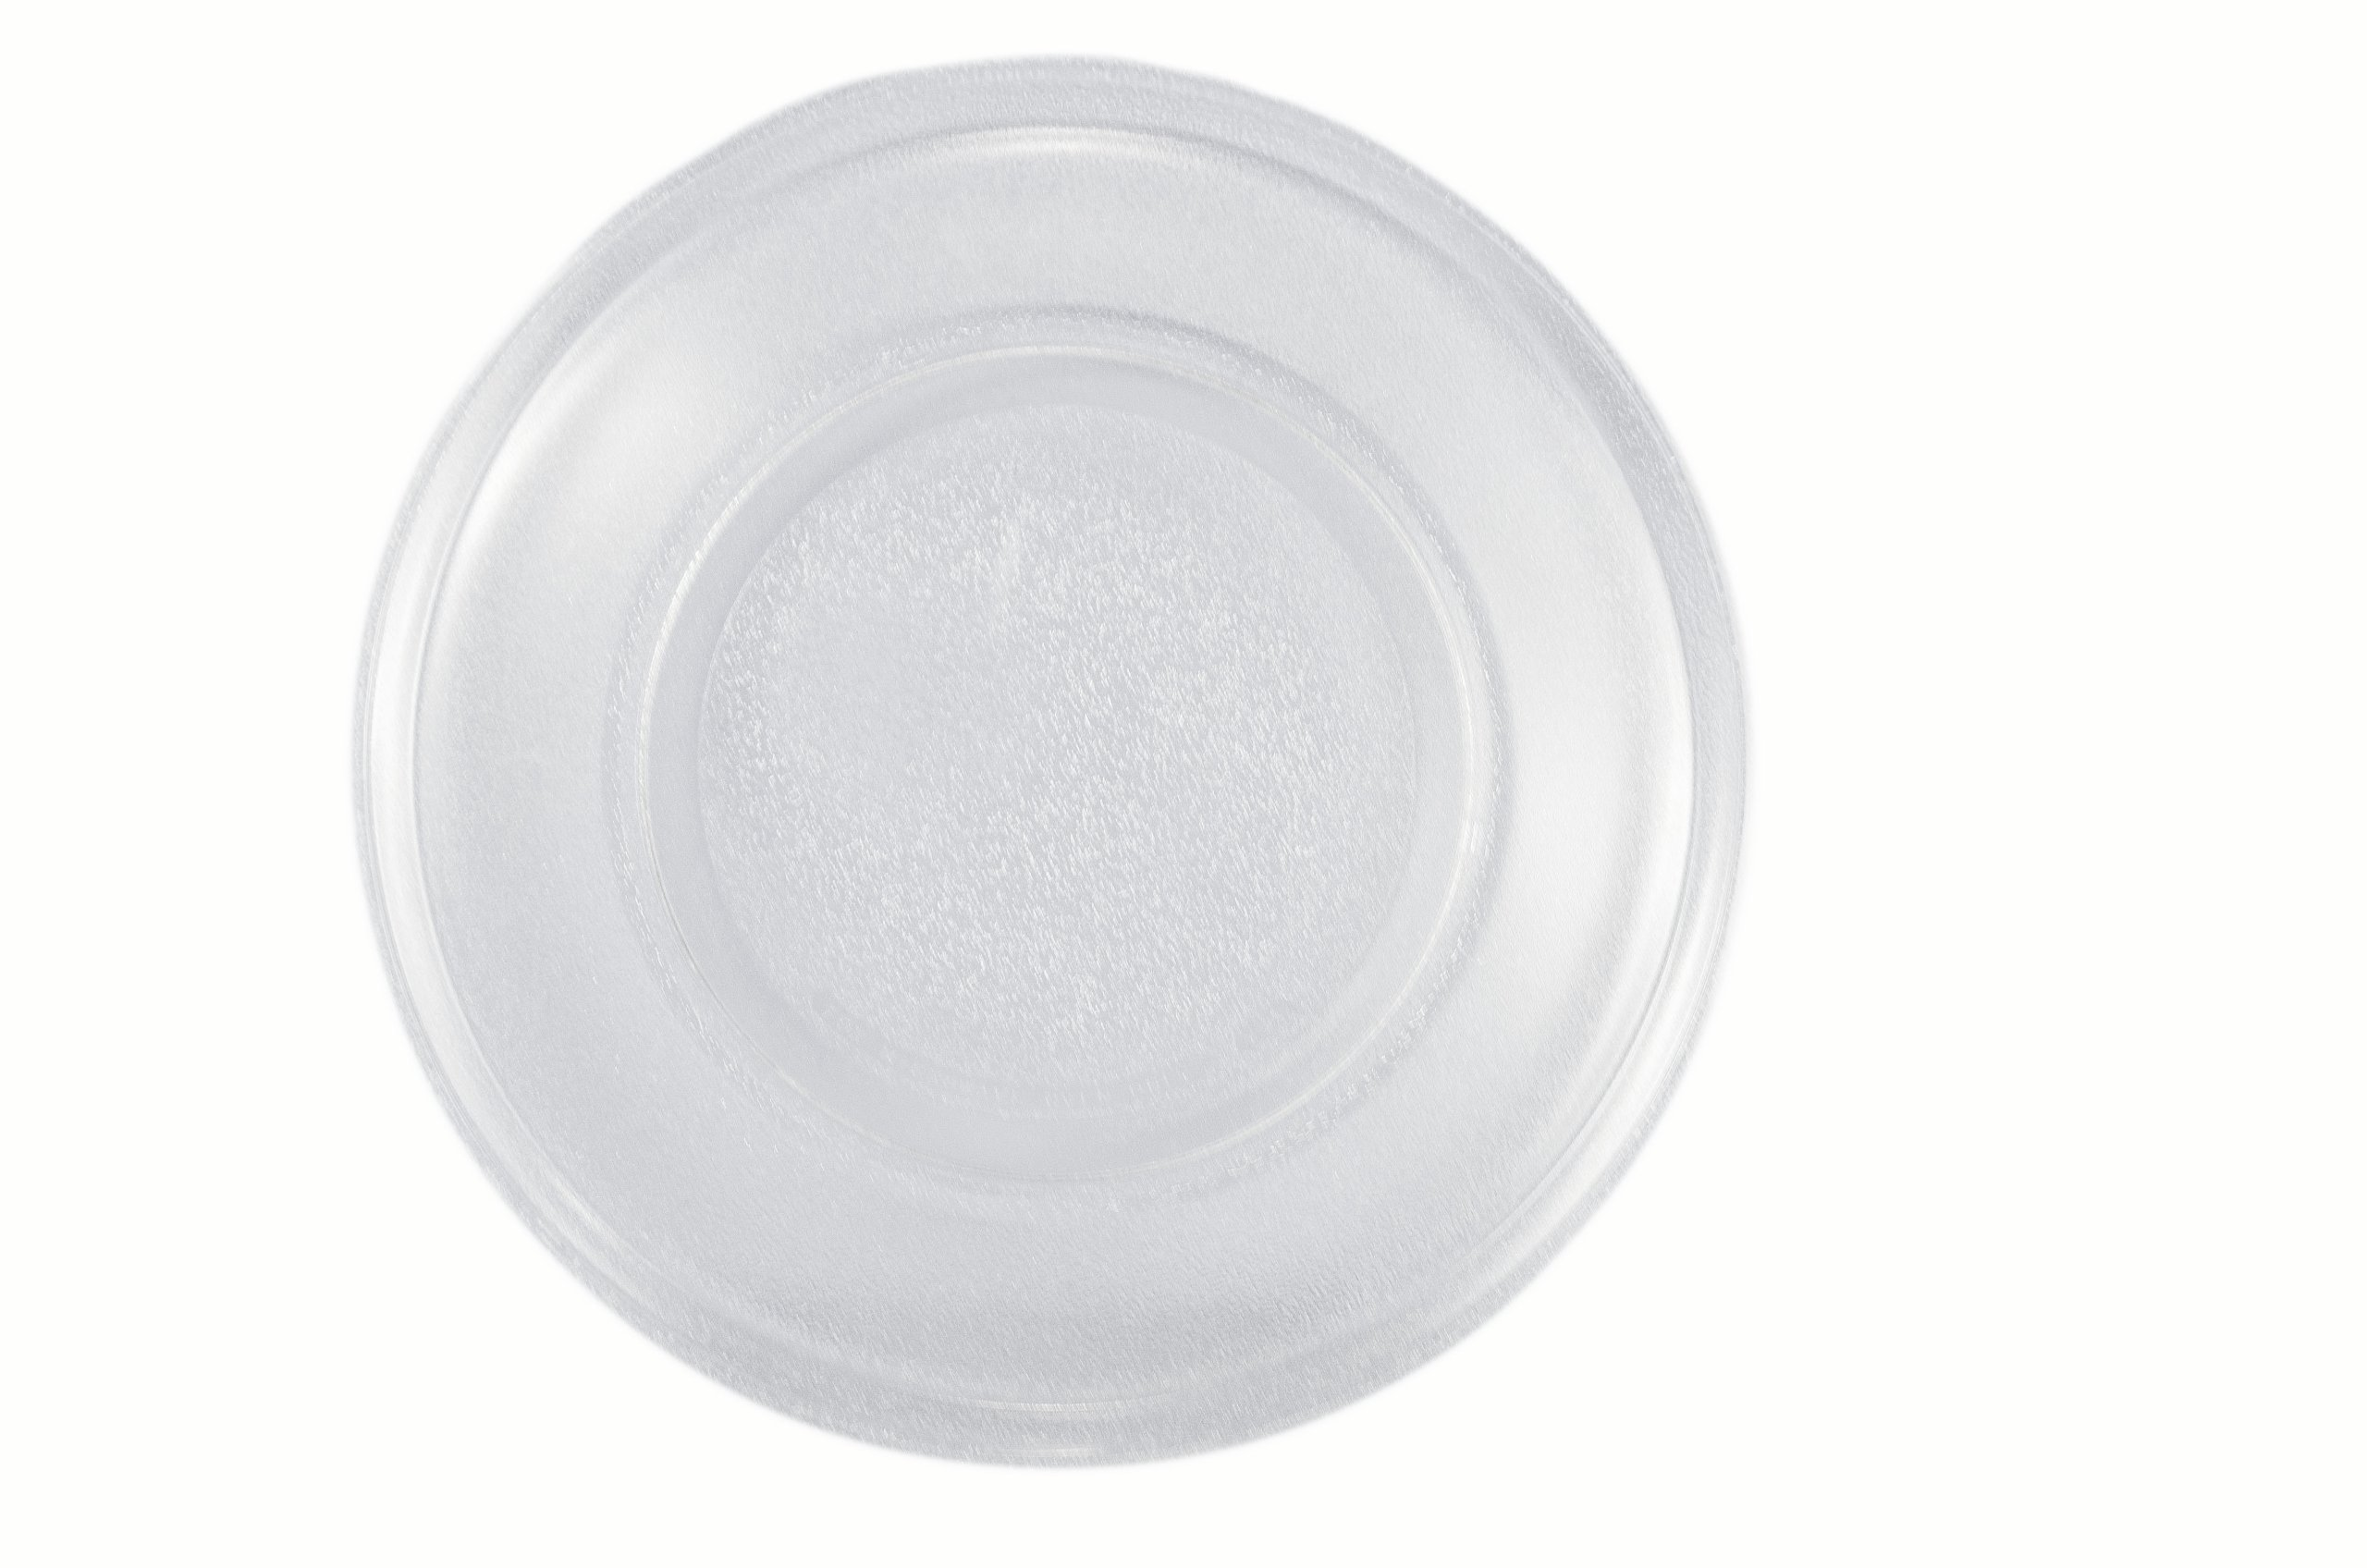 LG Electronics 3390W1G006B 16-Inch Microwave Oven Glass Turntable Tray by LG